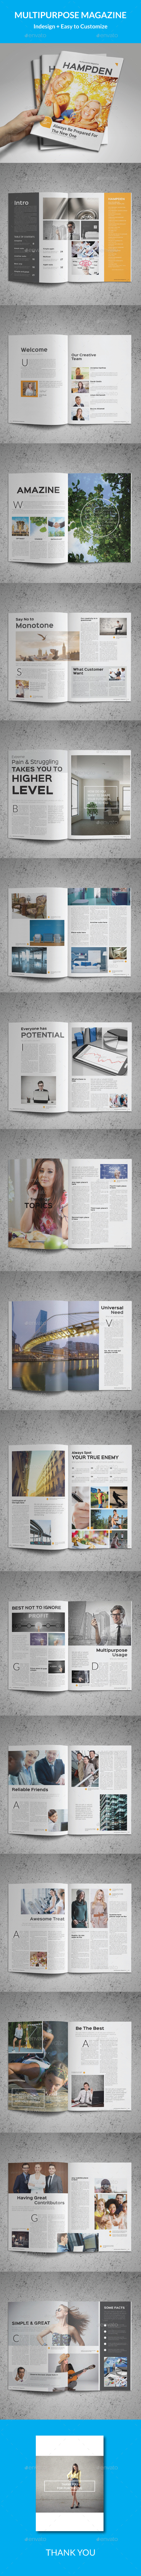 Multipurpose Magazine Template - Magazines Print Templates